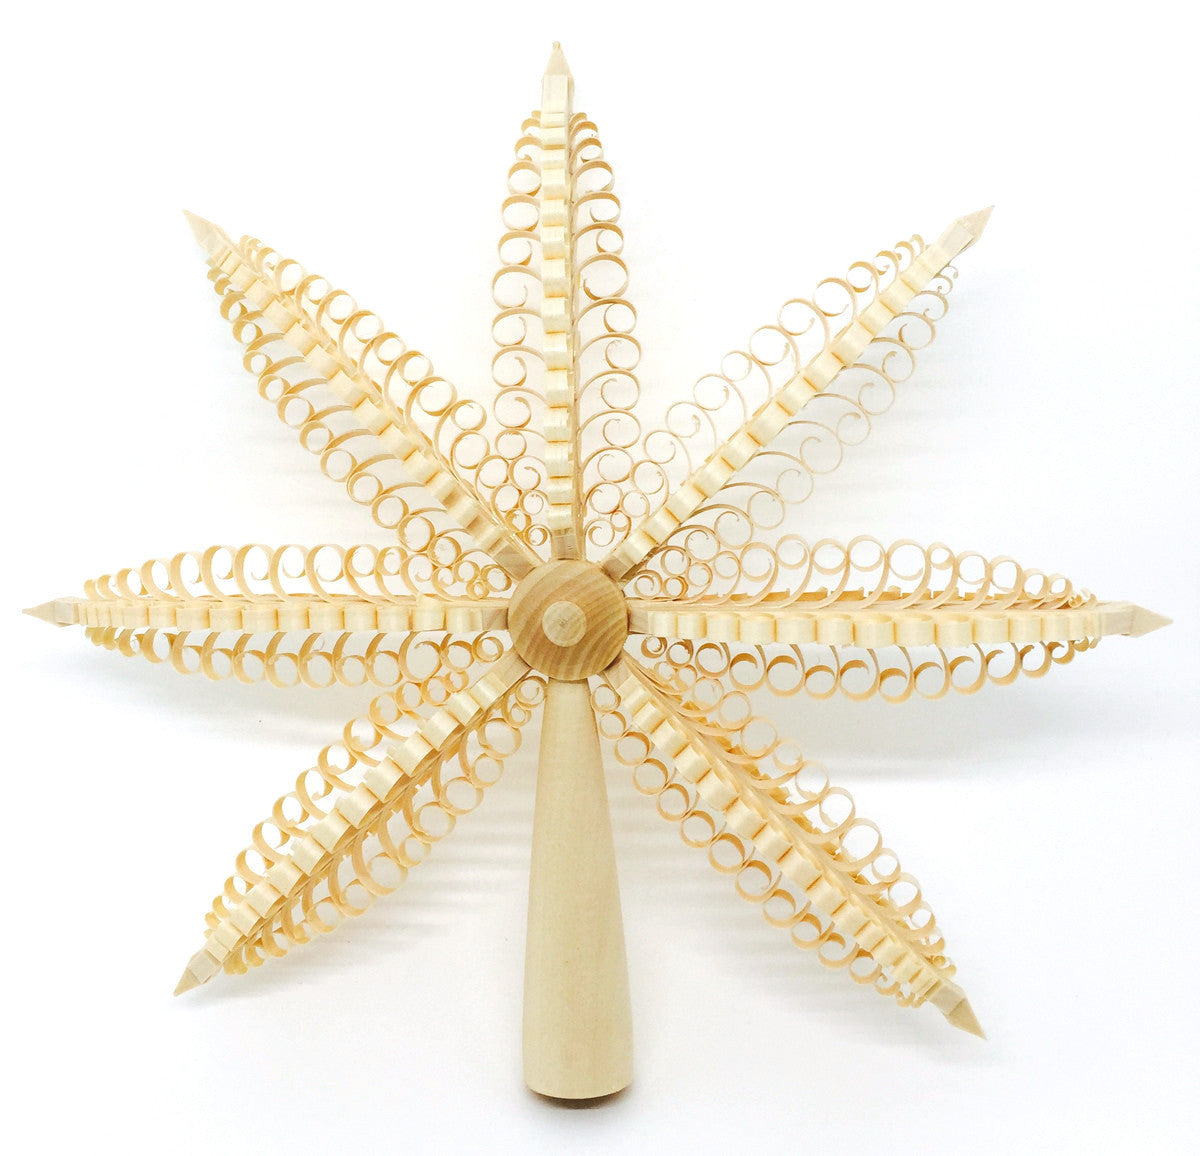 Christmas Tree (Spanbaum) Finial - Three Dimensional Trees - 9""